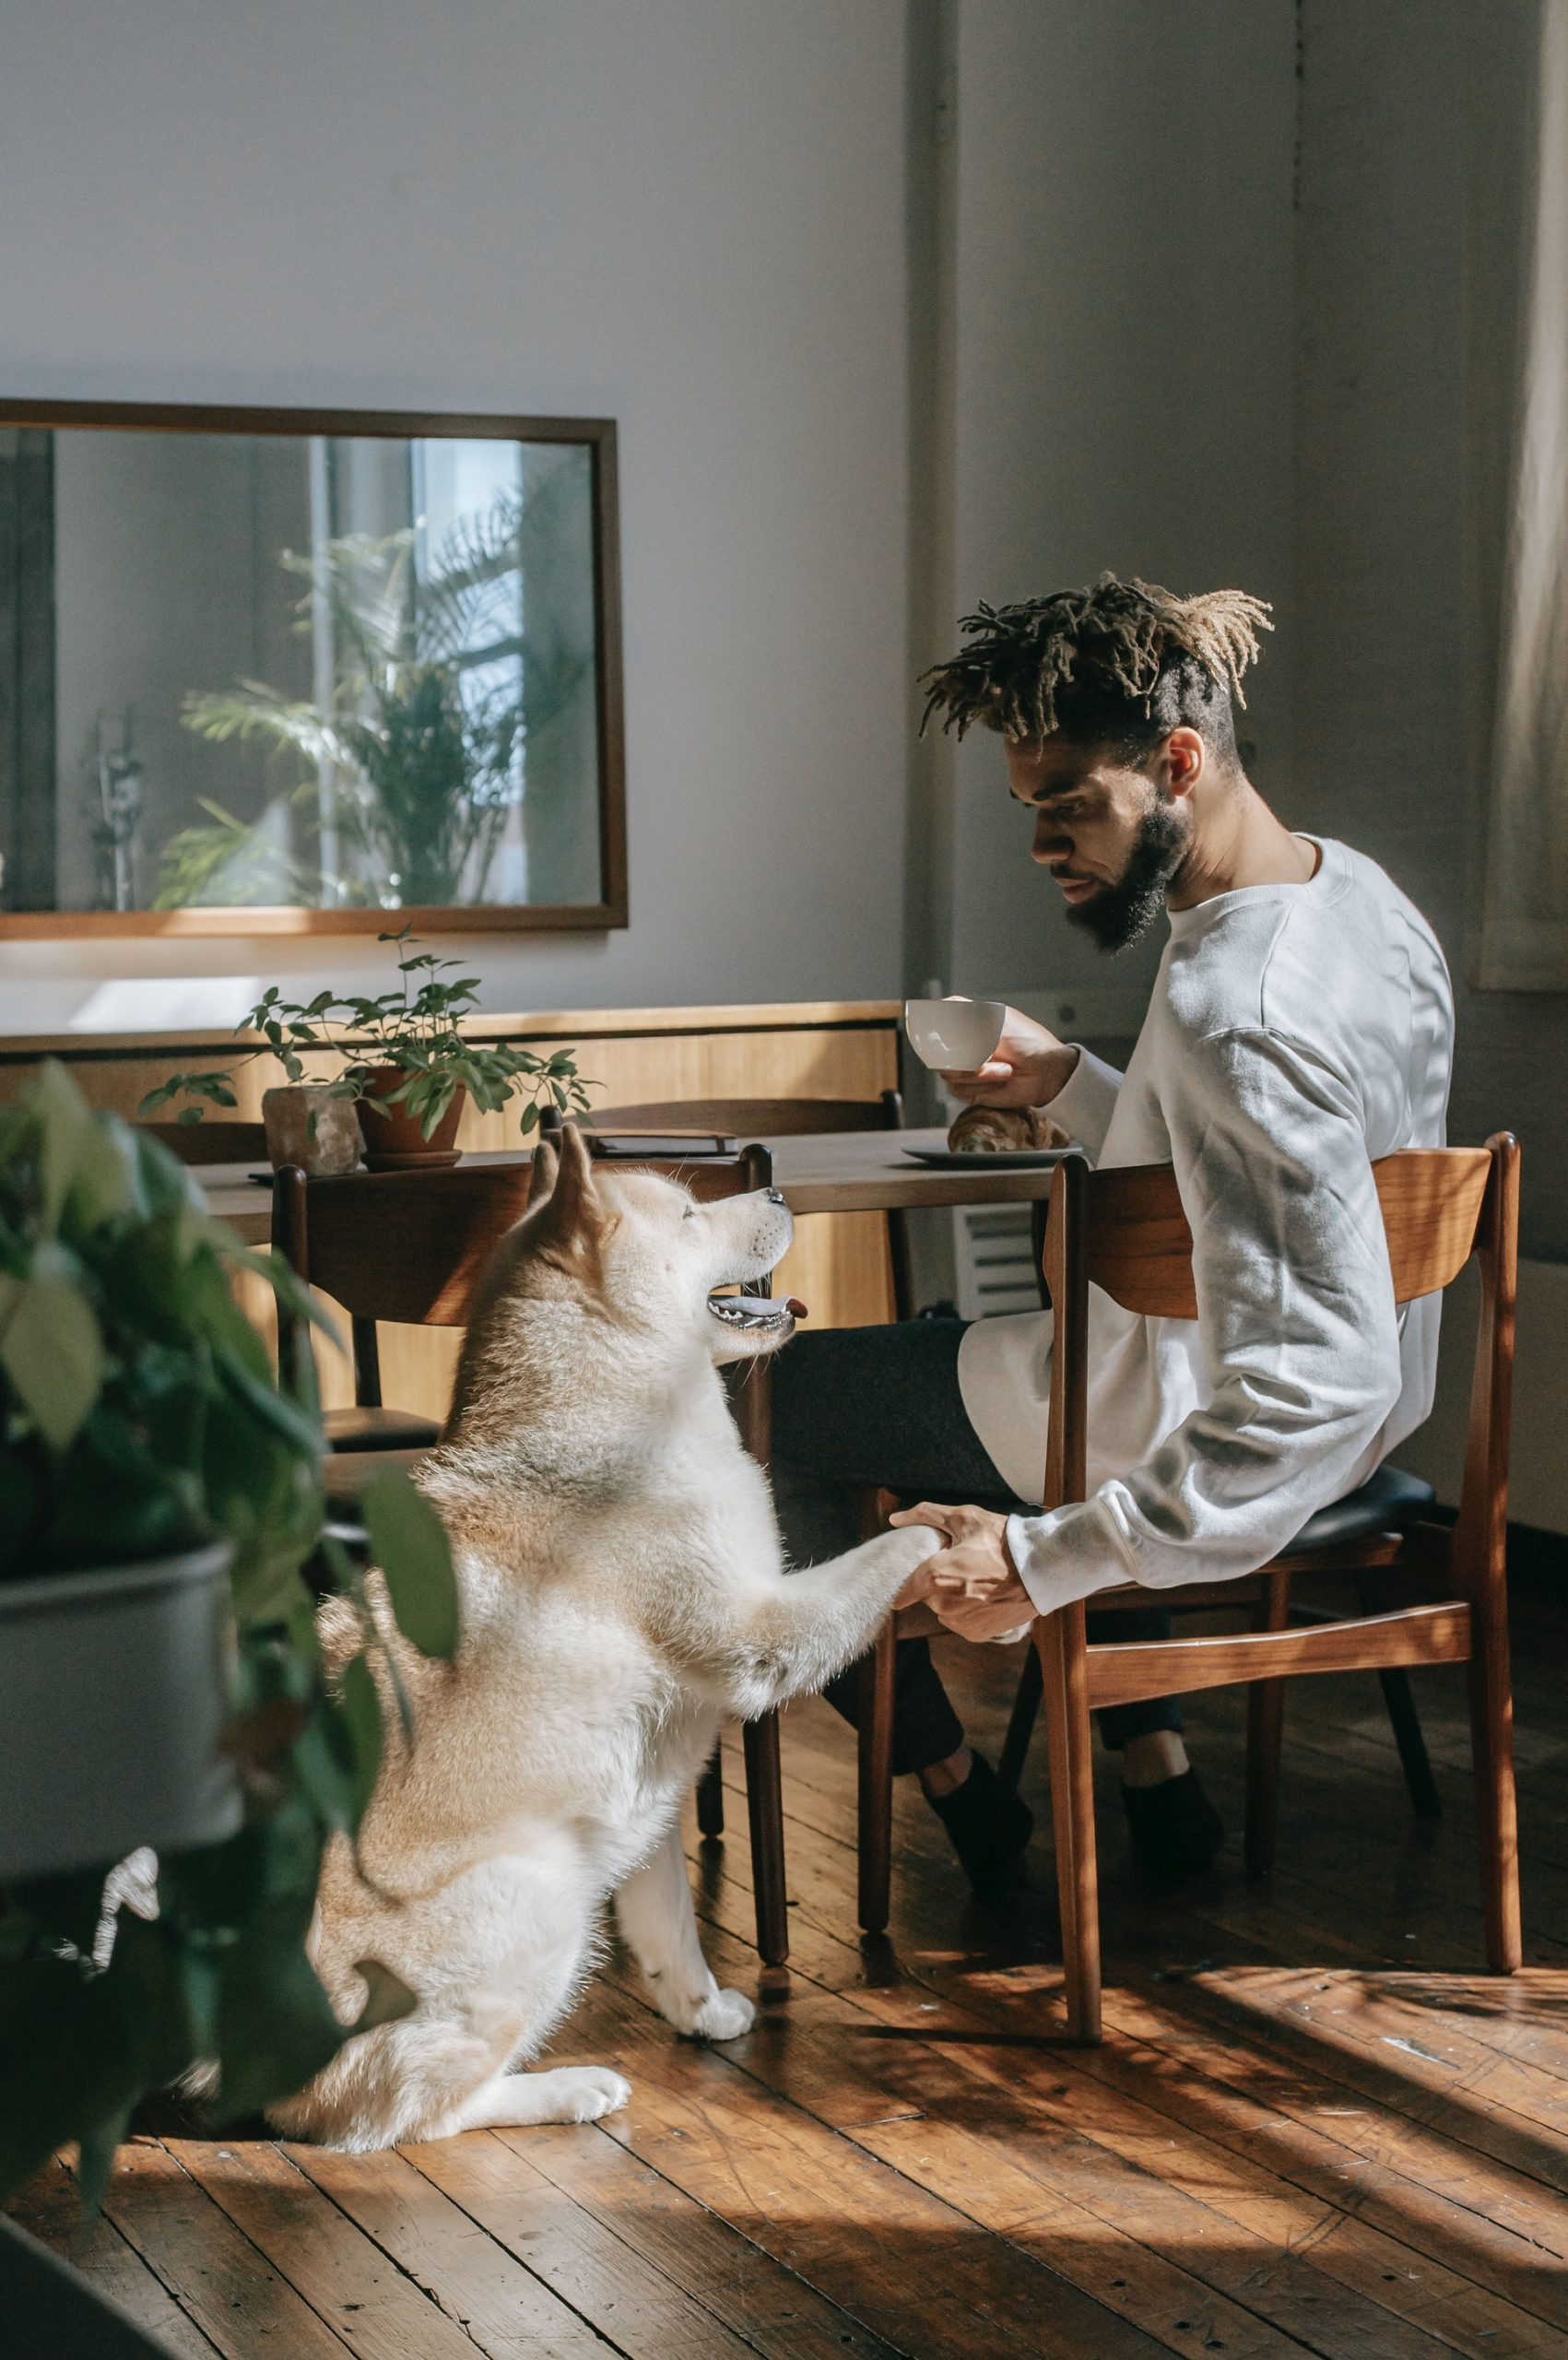 An eligible man shaking hands with his dog